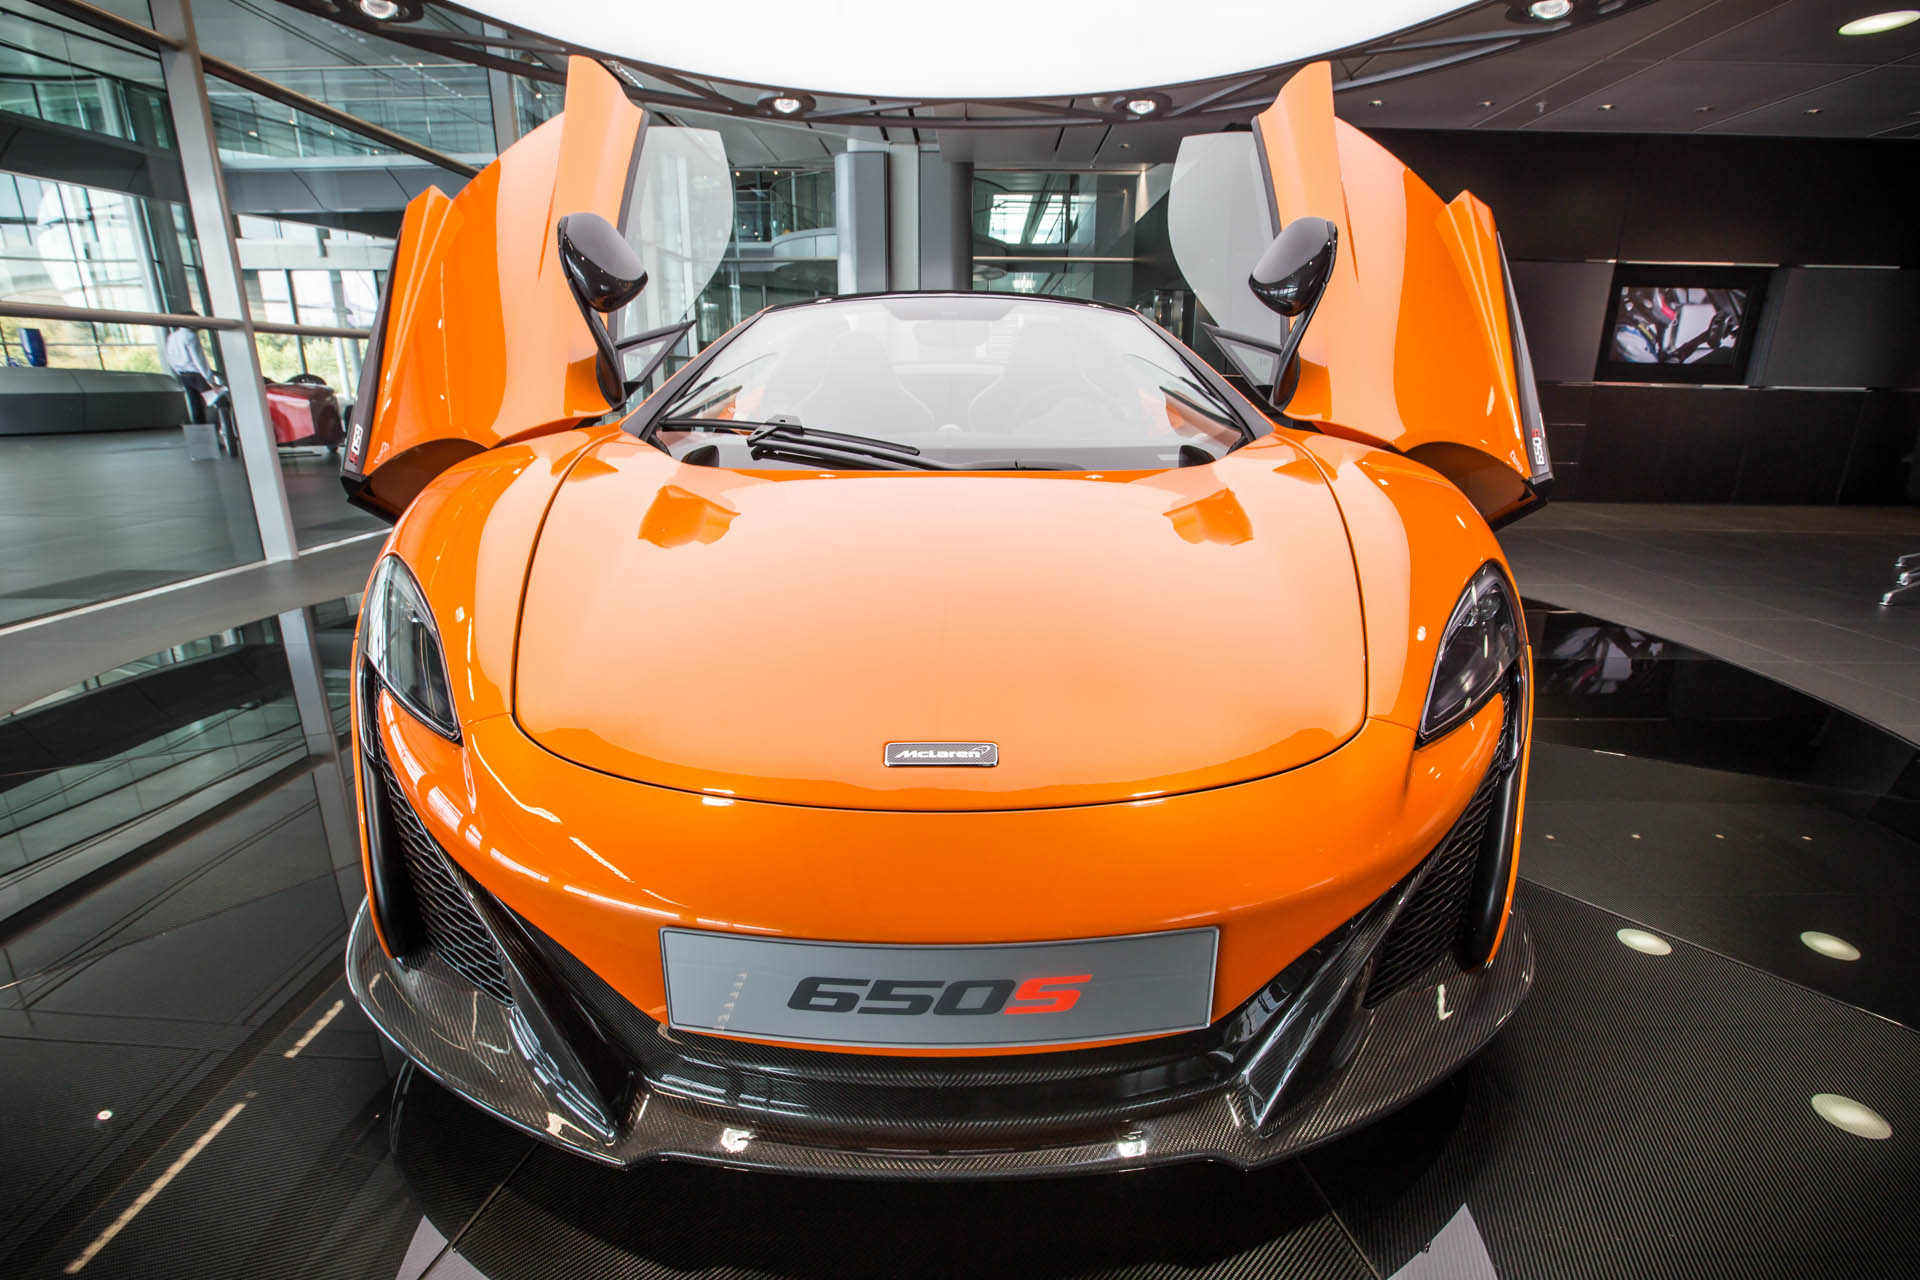 mclaren-behind-the-scenes-650s-43.jpg